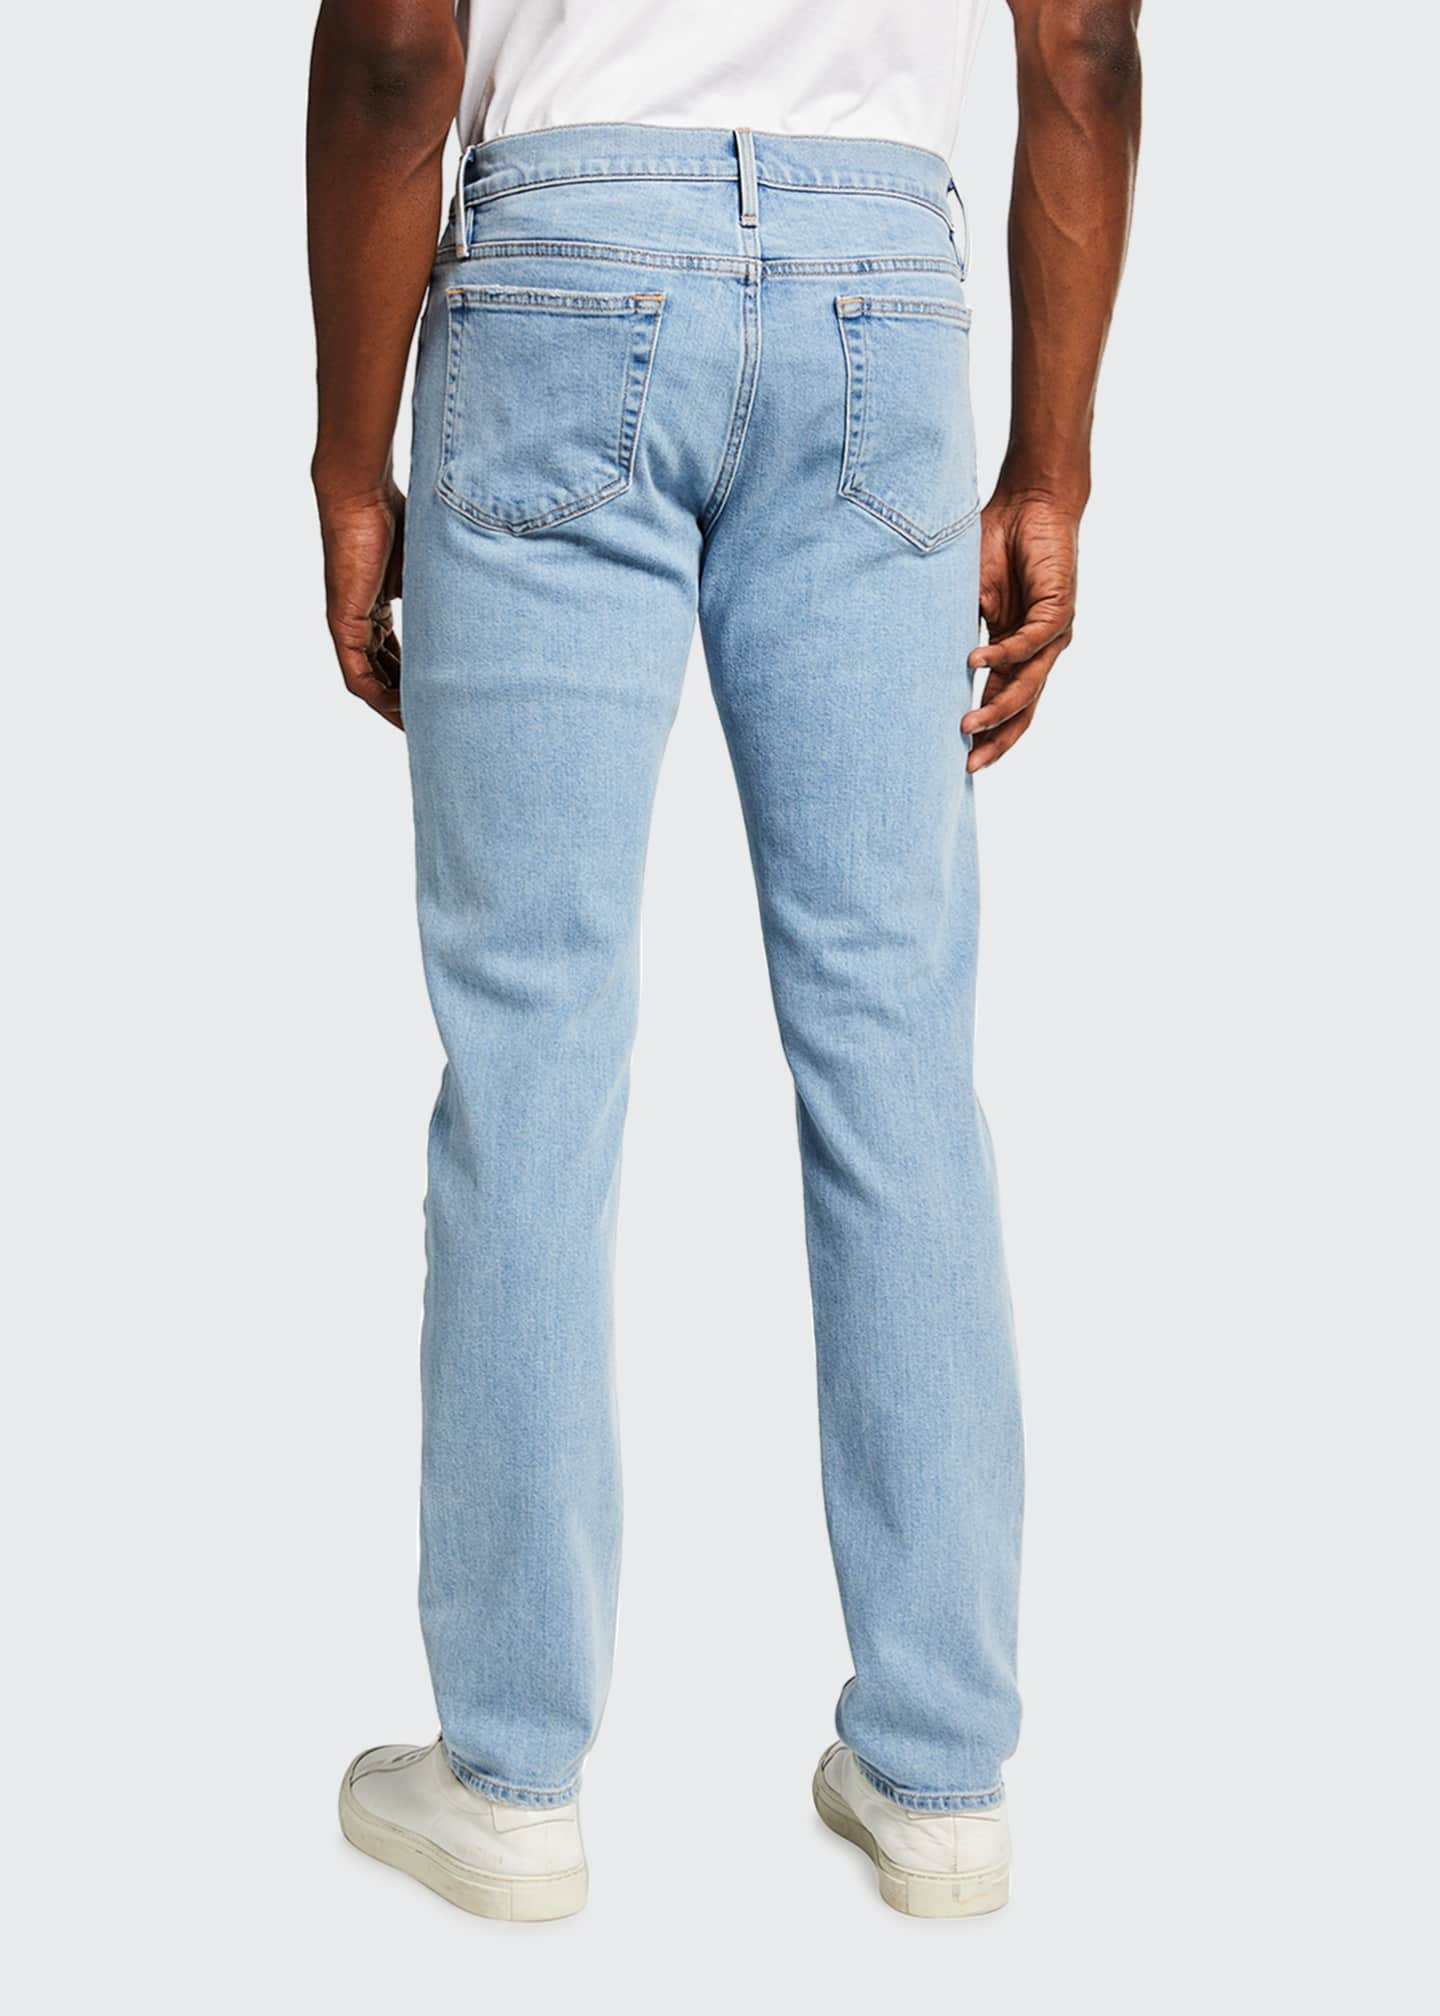 Image 2 of 3: Men's L'Homme Slim Light Wash Denim Jeans